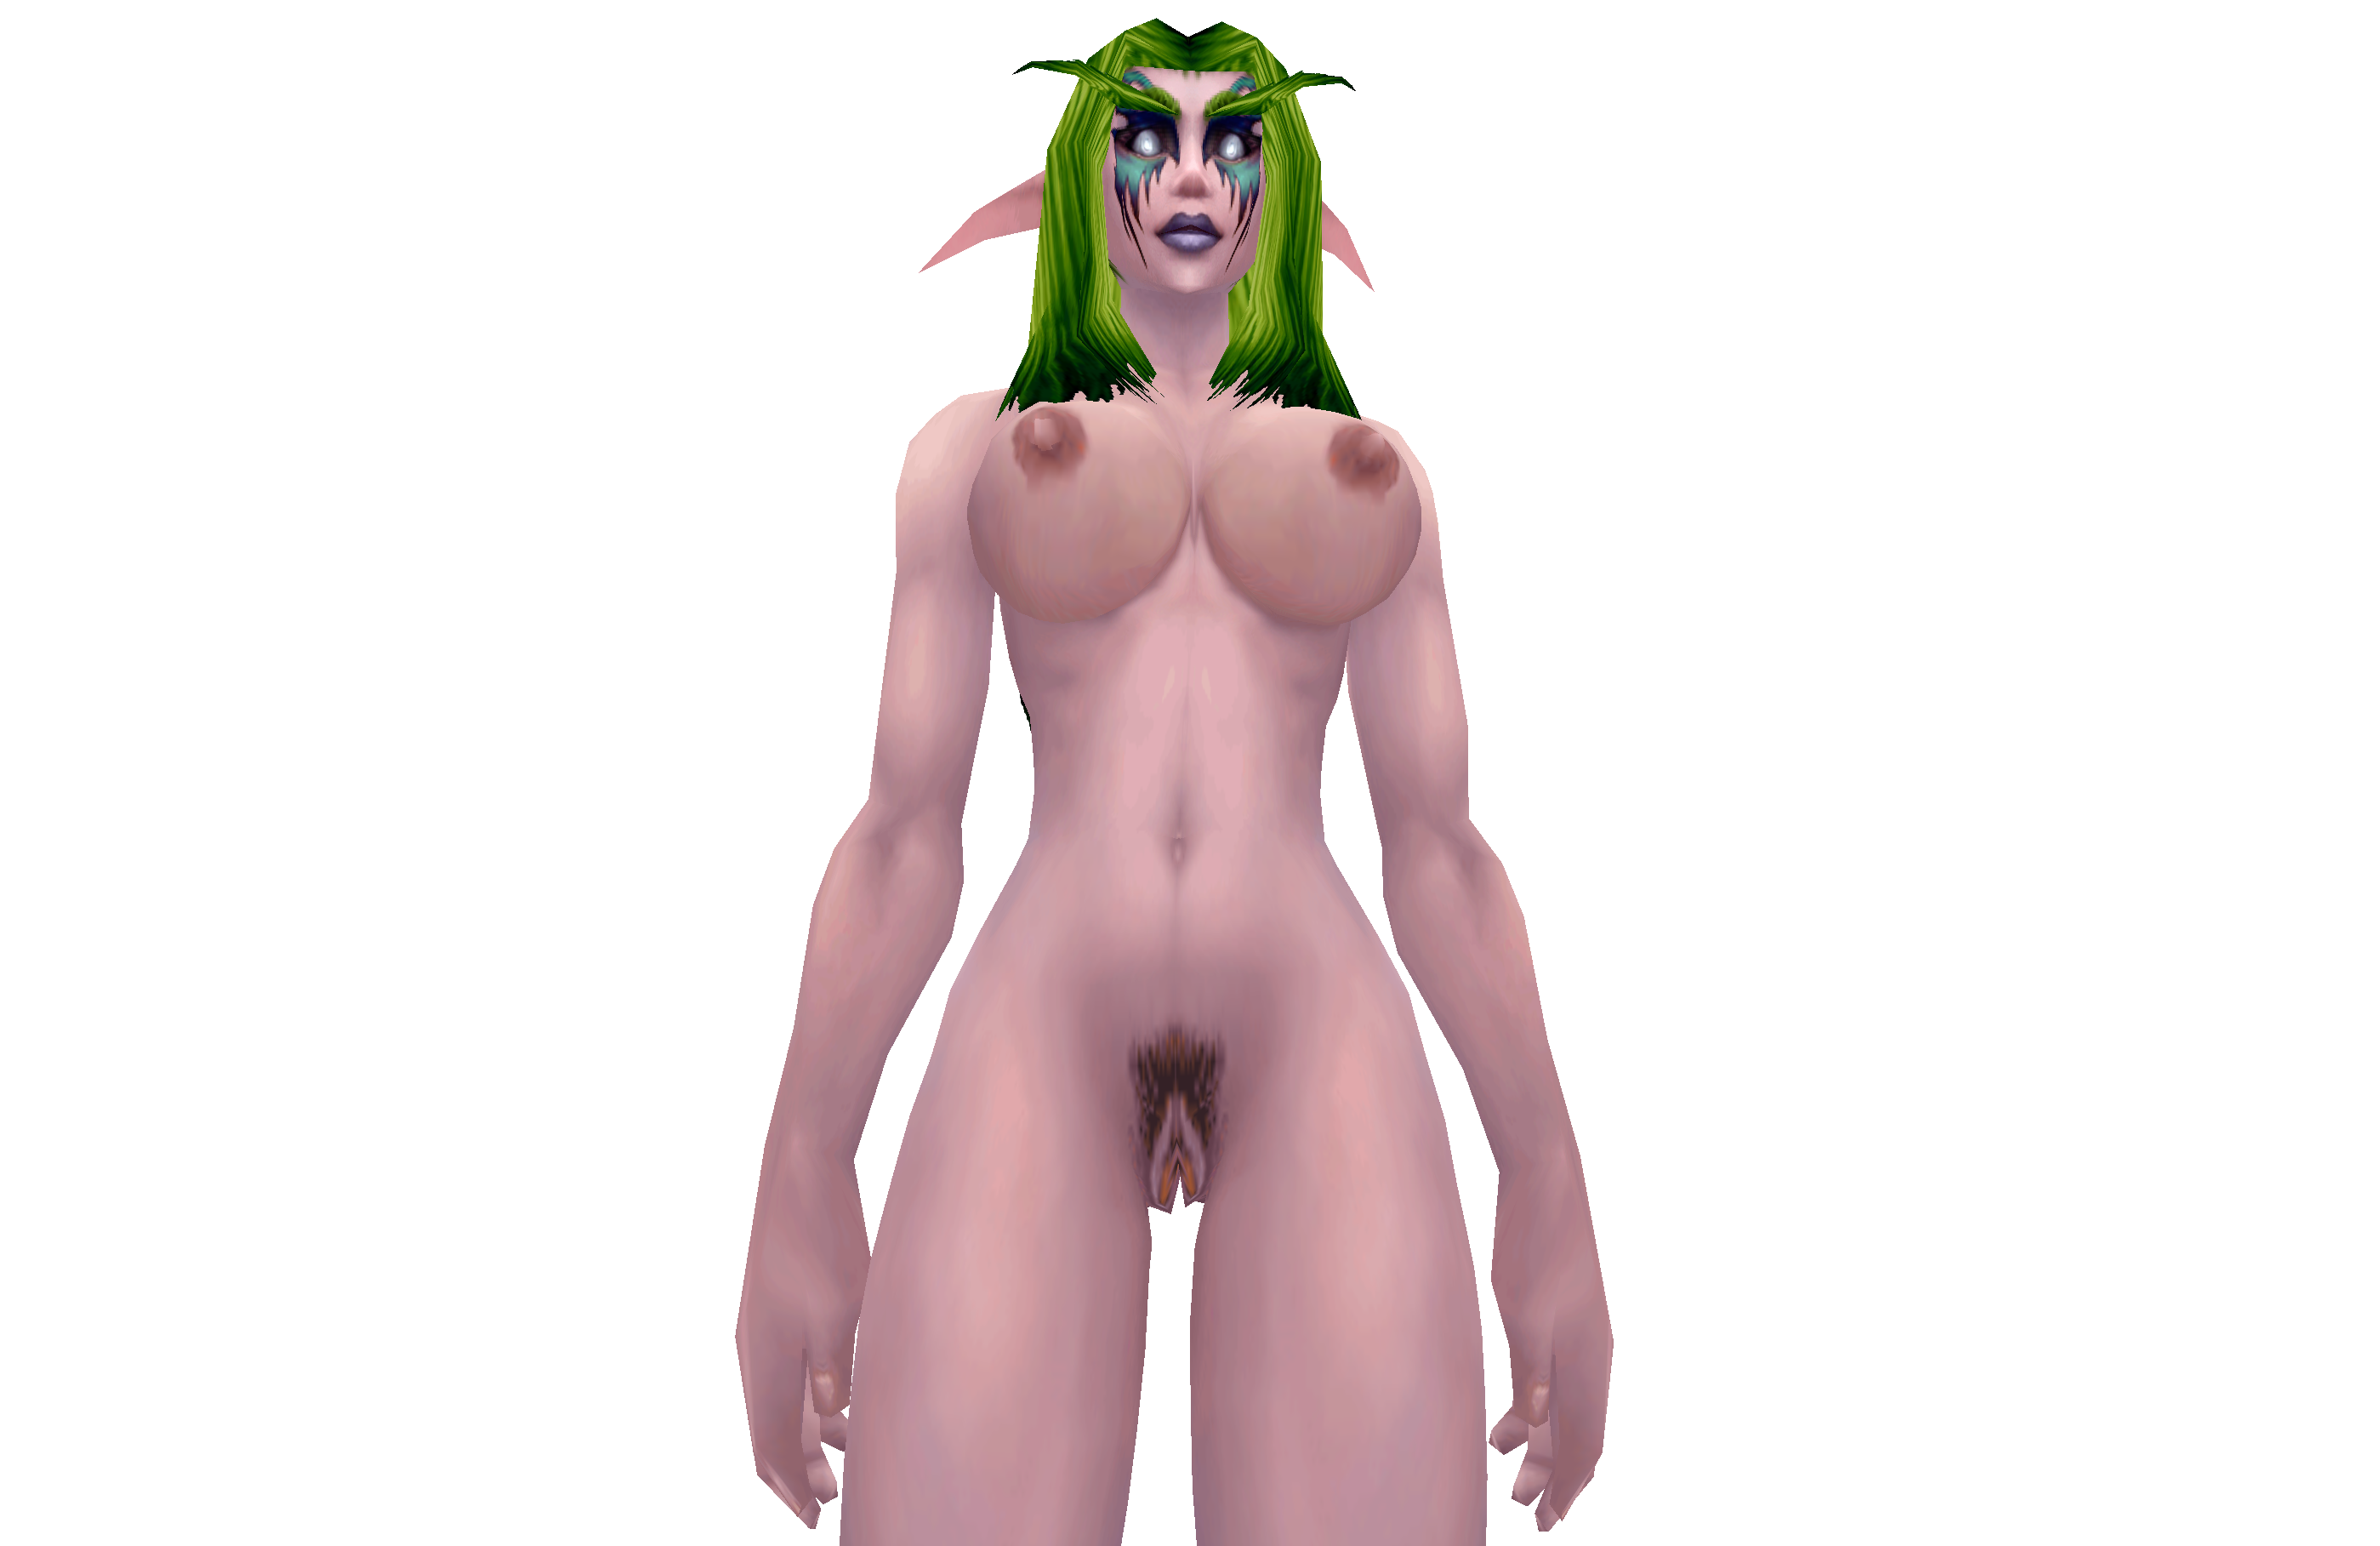 World of warcraft nude patch 1 2 xxx scene